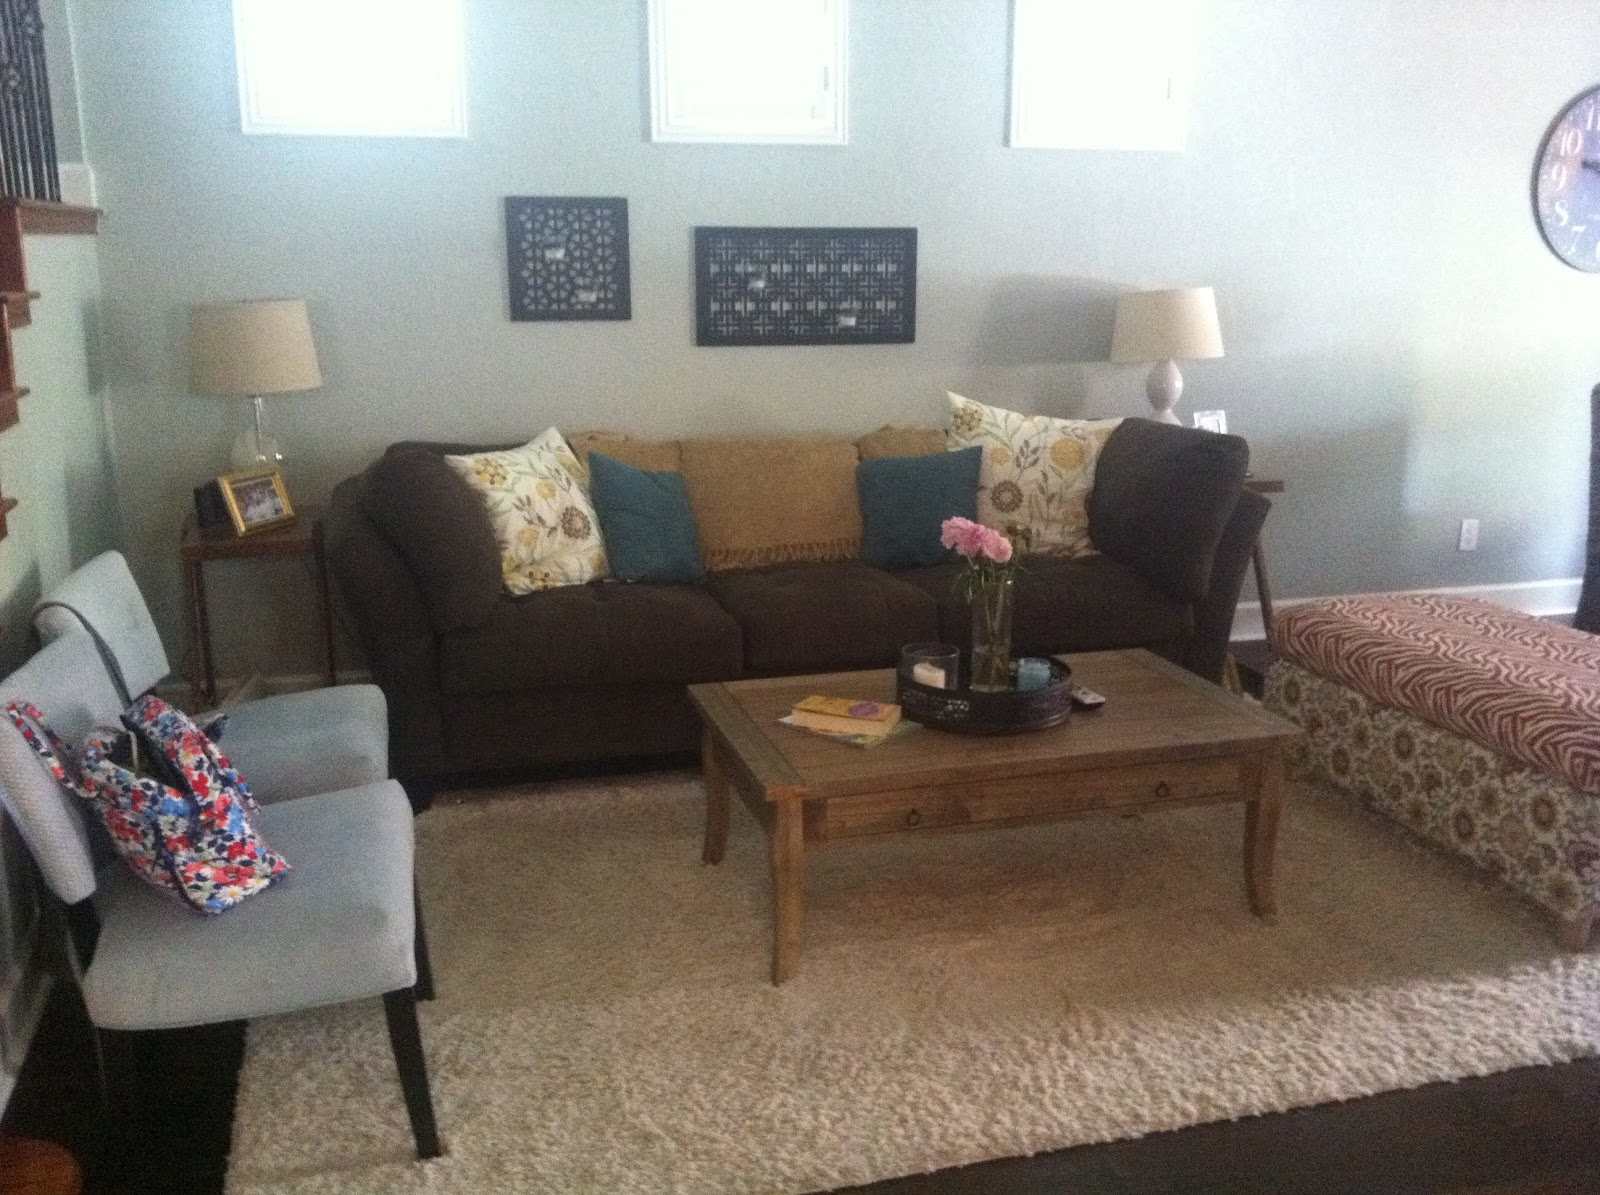 Living Room Decorating Ideas Teal And Brown teal and brown living room decorating ideas – modern house